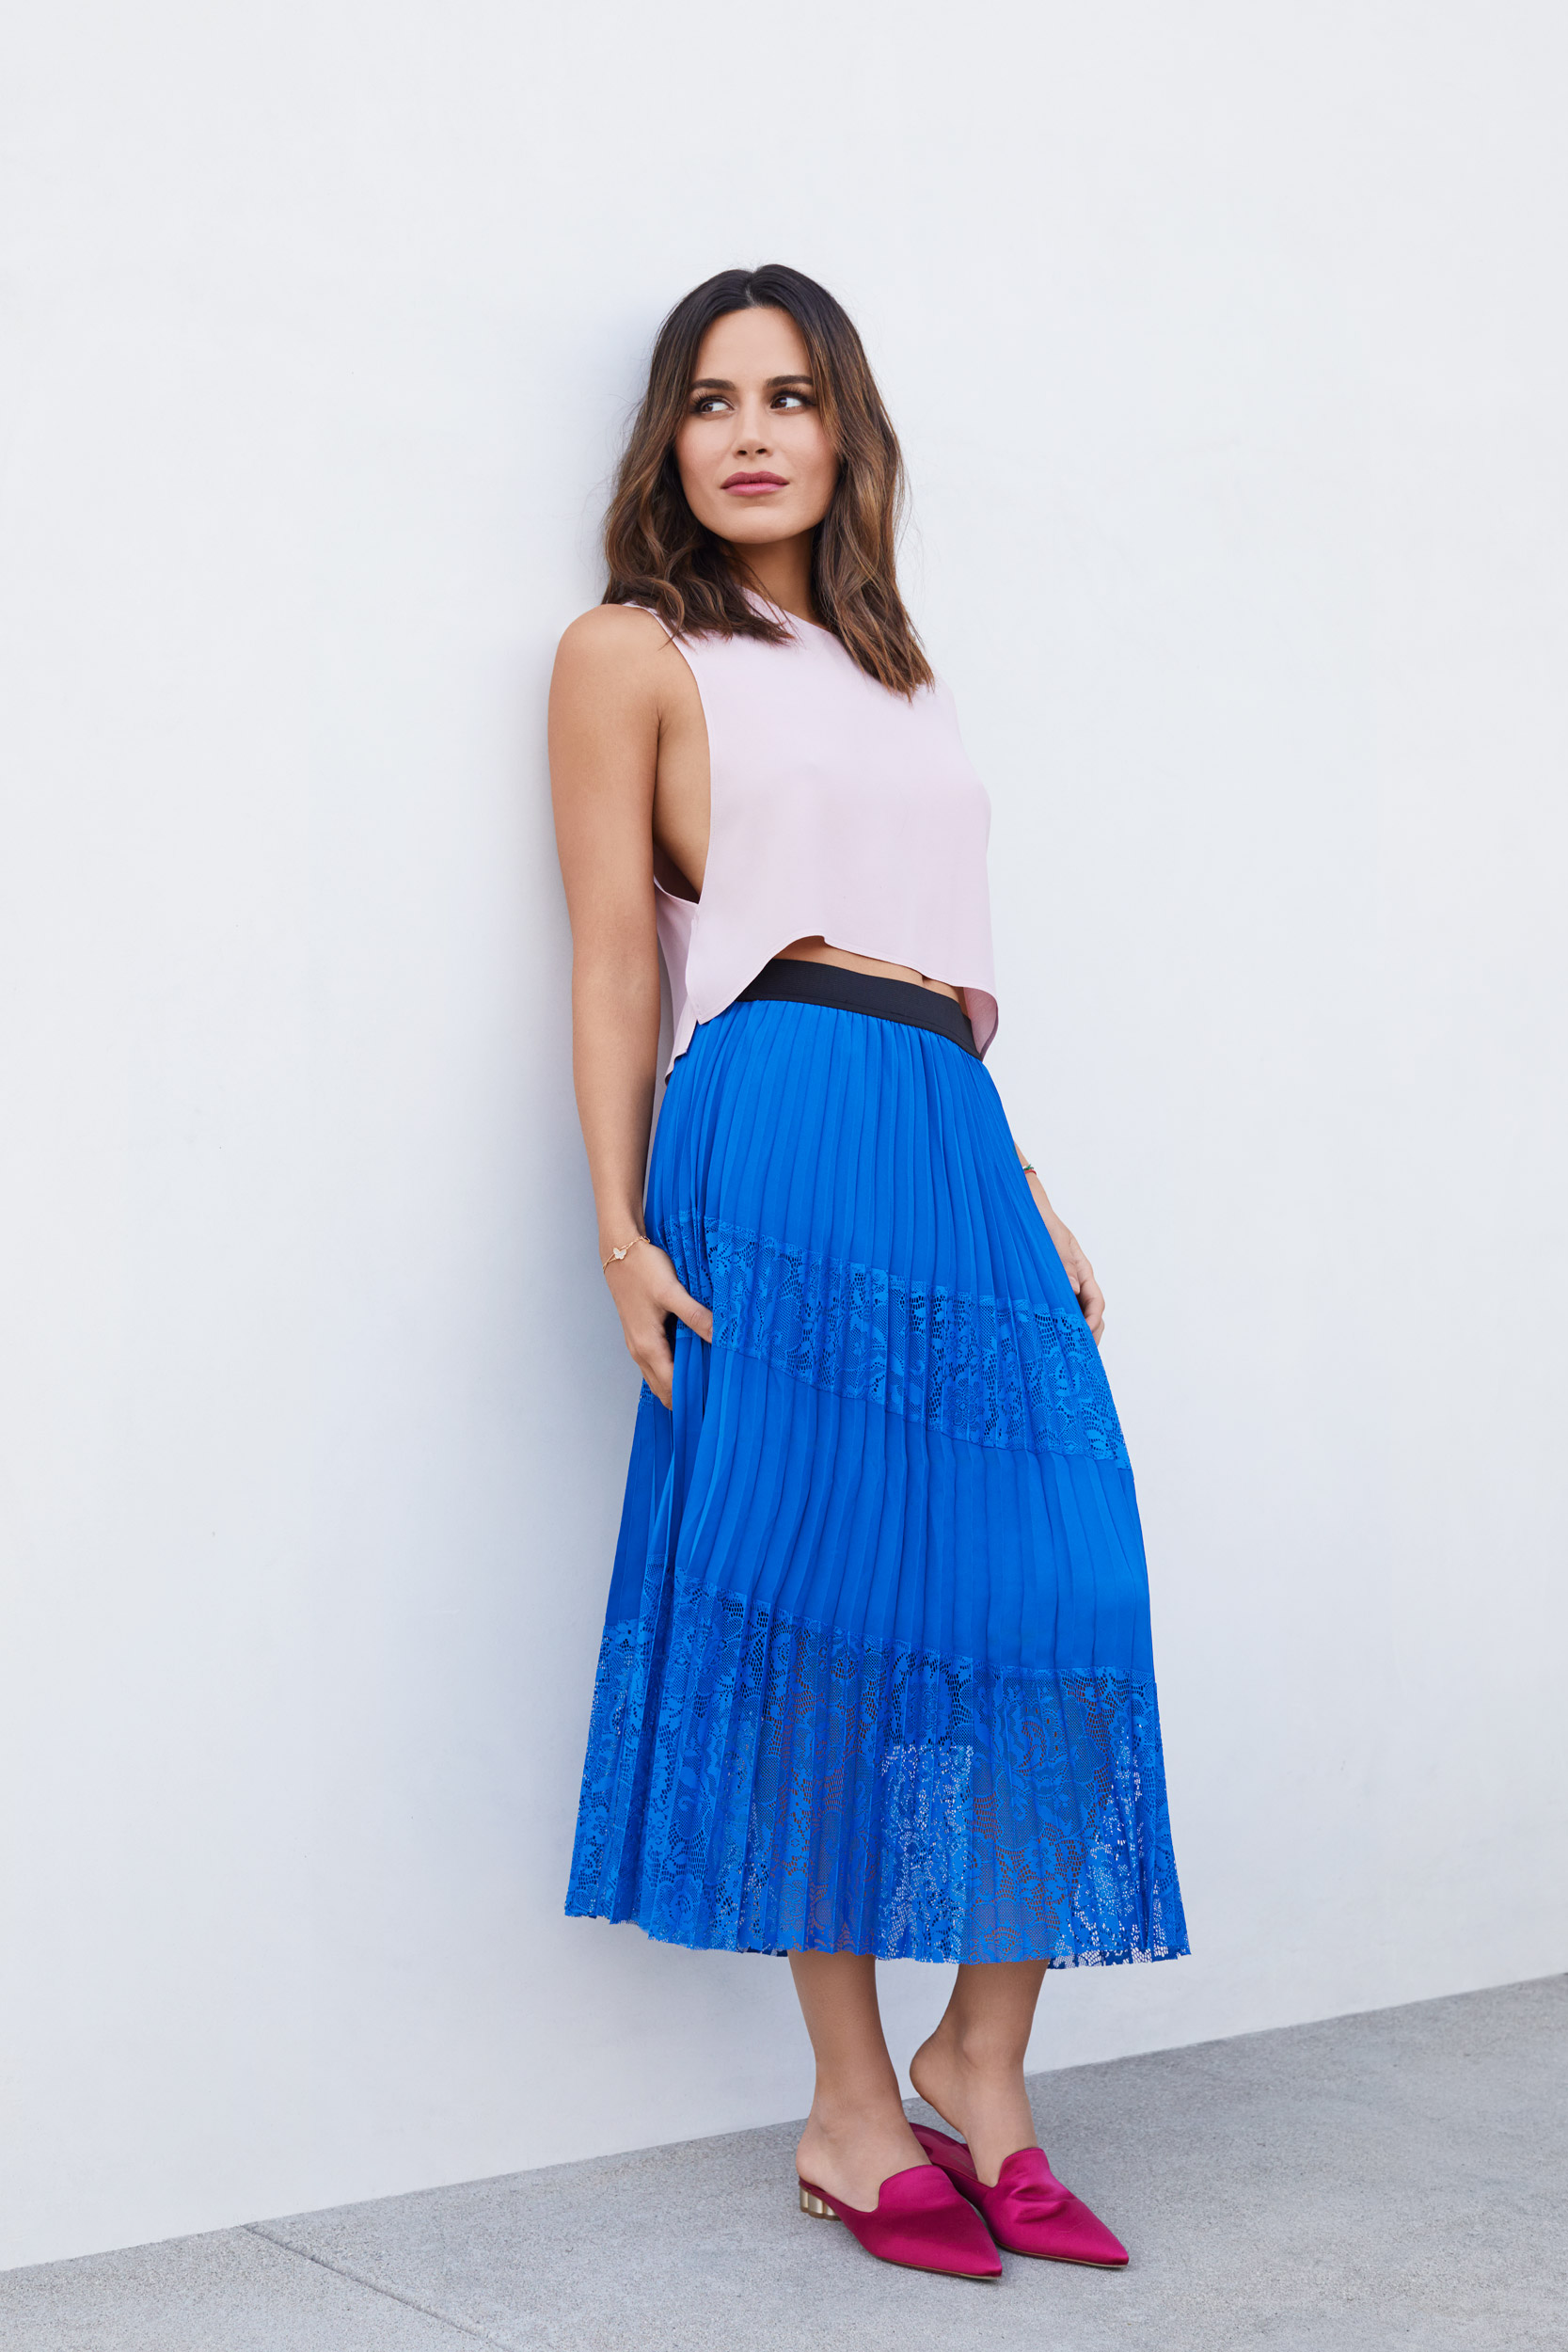 Woman wearing a vibrant blue skirt leaning against a wall. Kim Genevieve Los Angeles Portrait Photographer